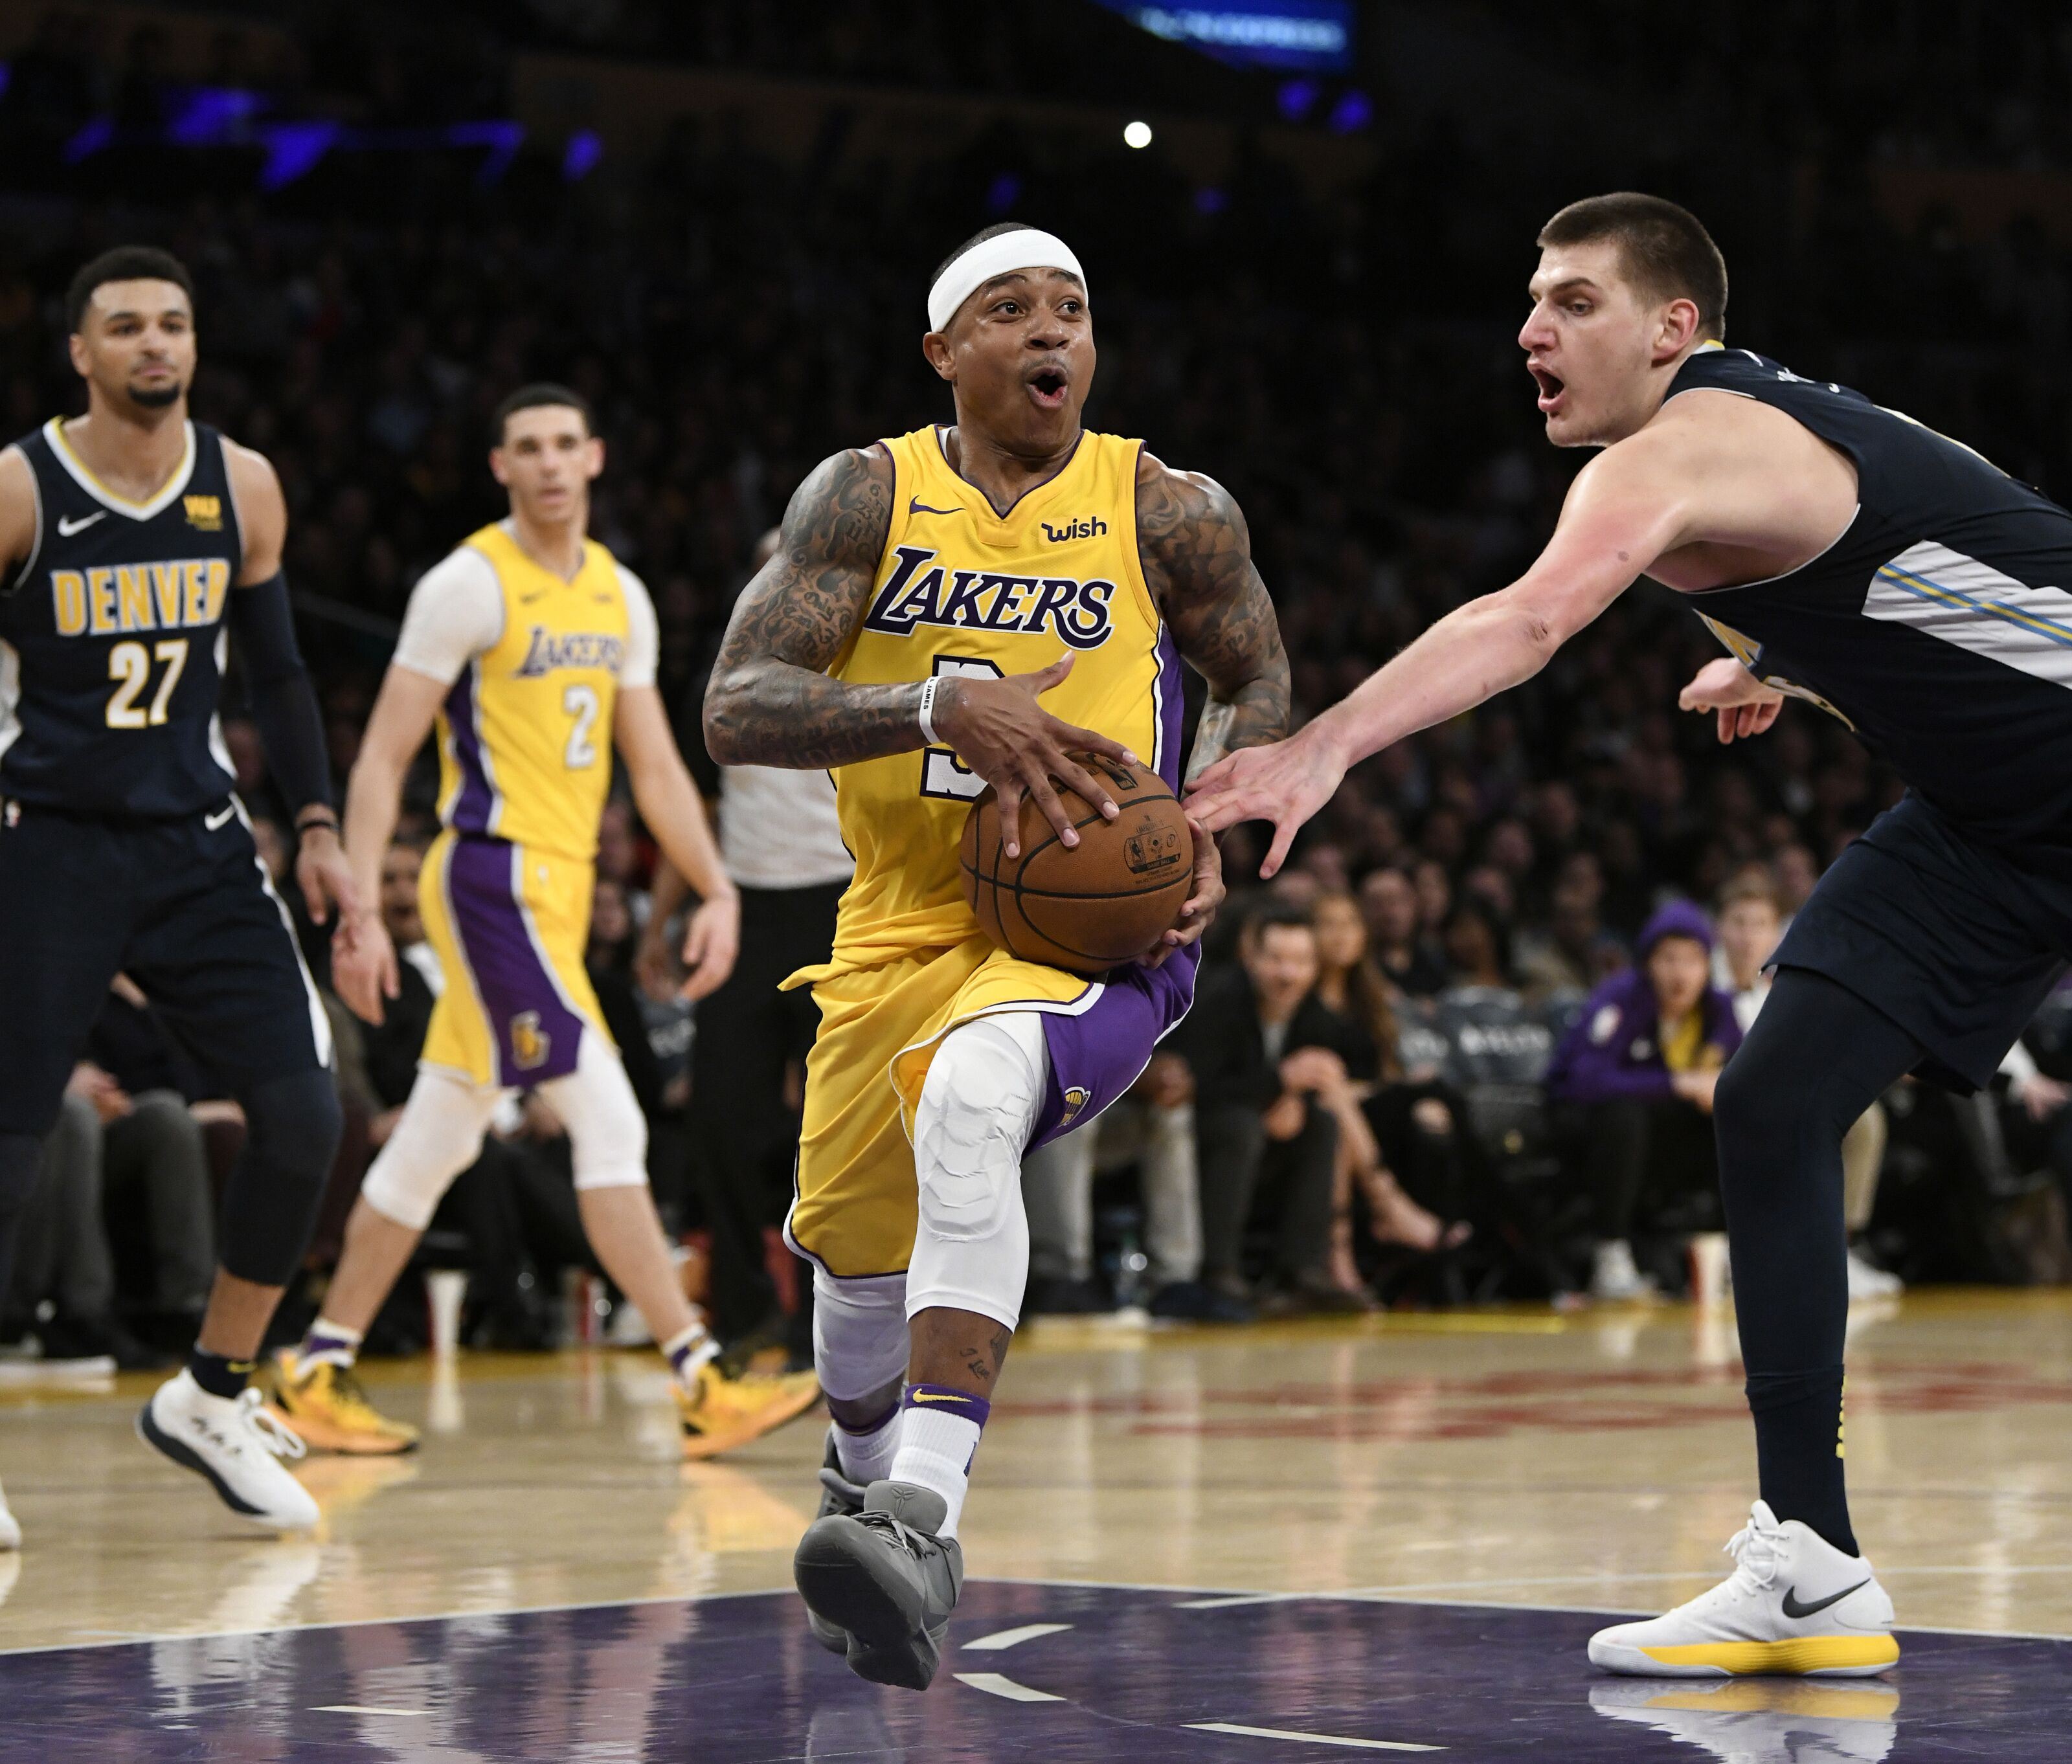 sale retailer ba77b cc808 Lakers News: Isaiah Thomas inks deal with Denver Nuggets